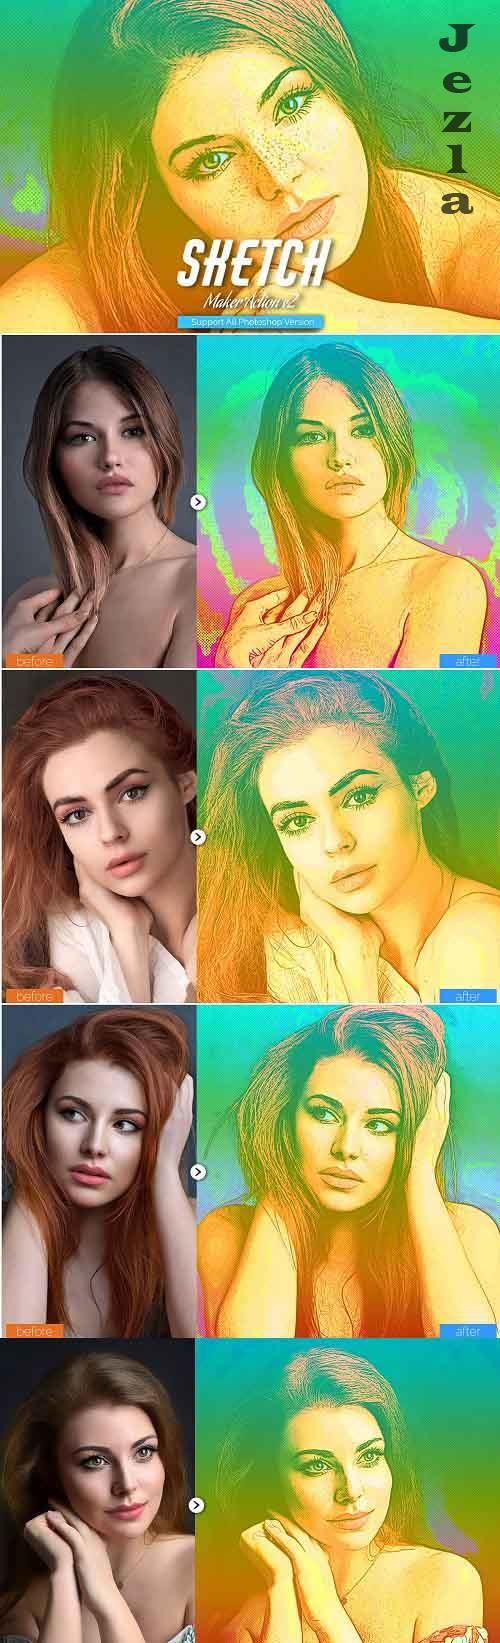 Color Sketch Photoshop Action V2 - 5467241